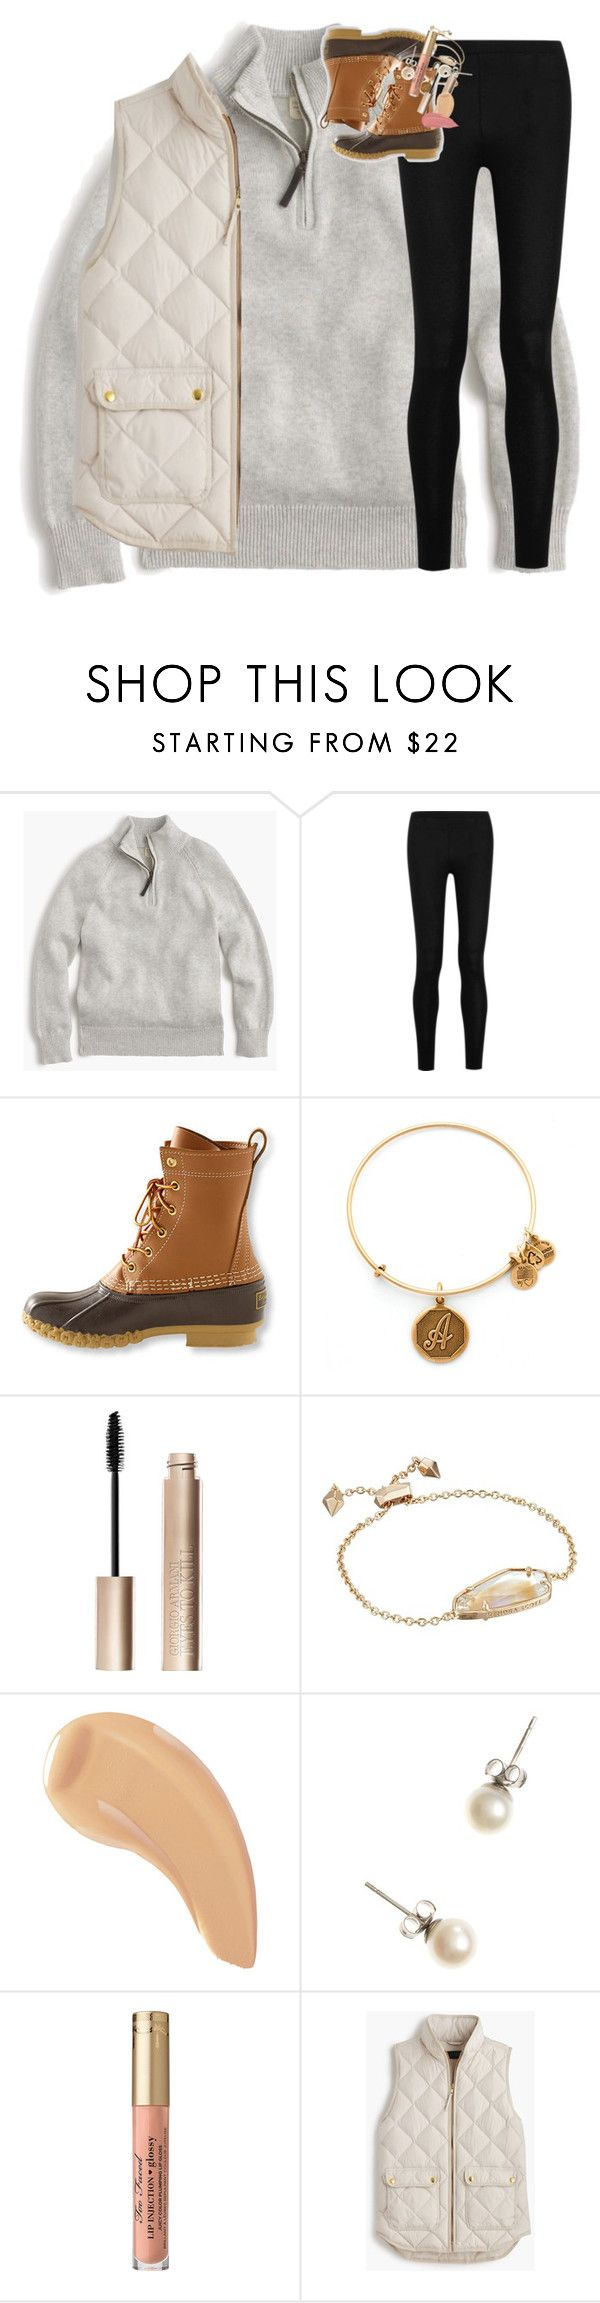 """so excited for cheer season!"" by classynsouthern ❤ liked on Polyvore featuring J.Crew, Donna Karan, L.L.Bean, Alex and Ani, Giorgio Armani, Kendra Scott and NARS Cosmetics"